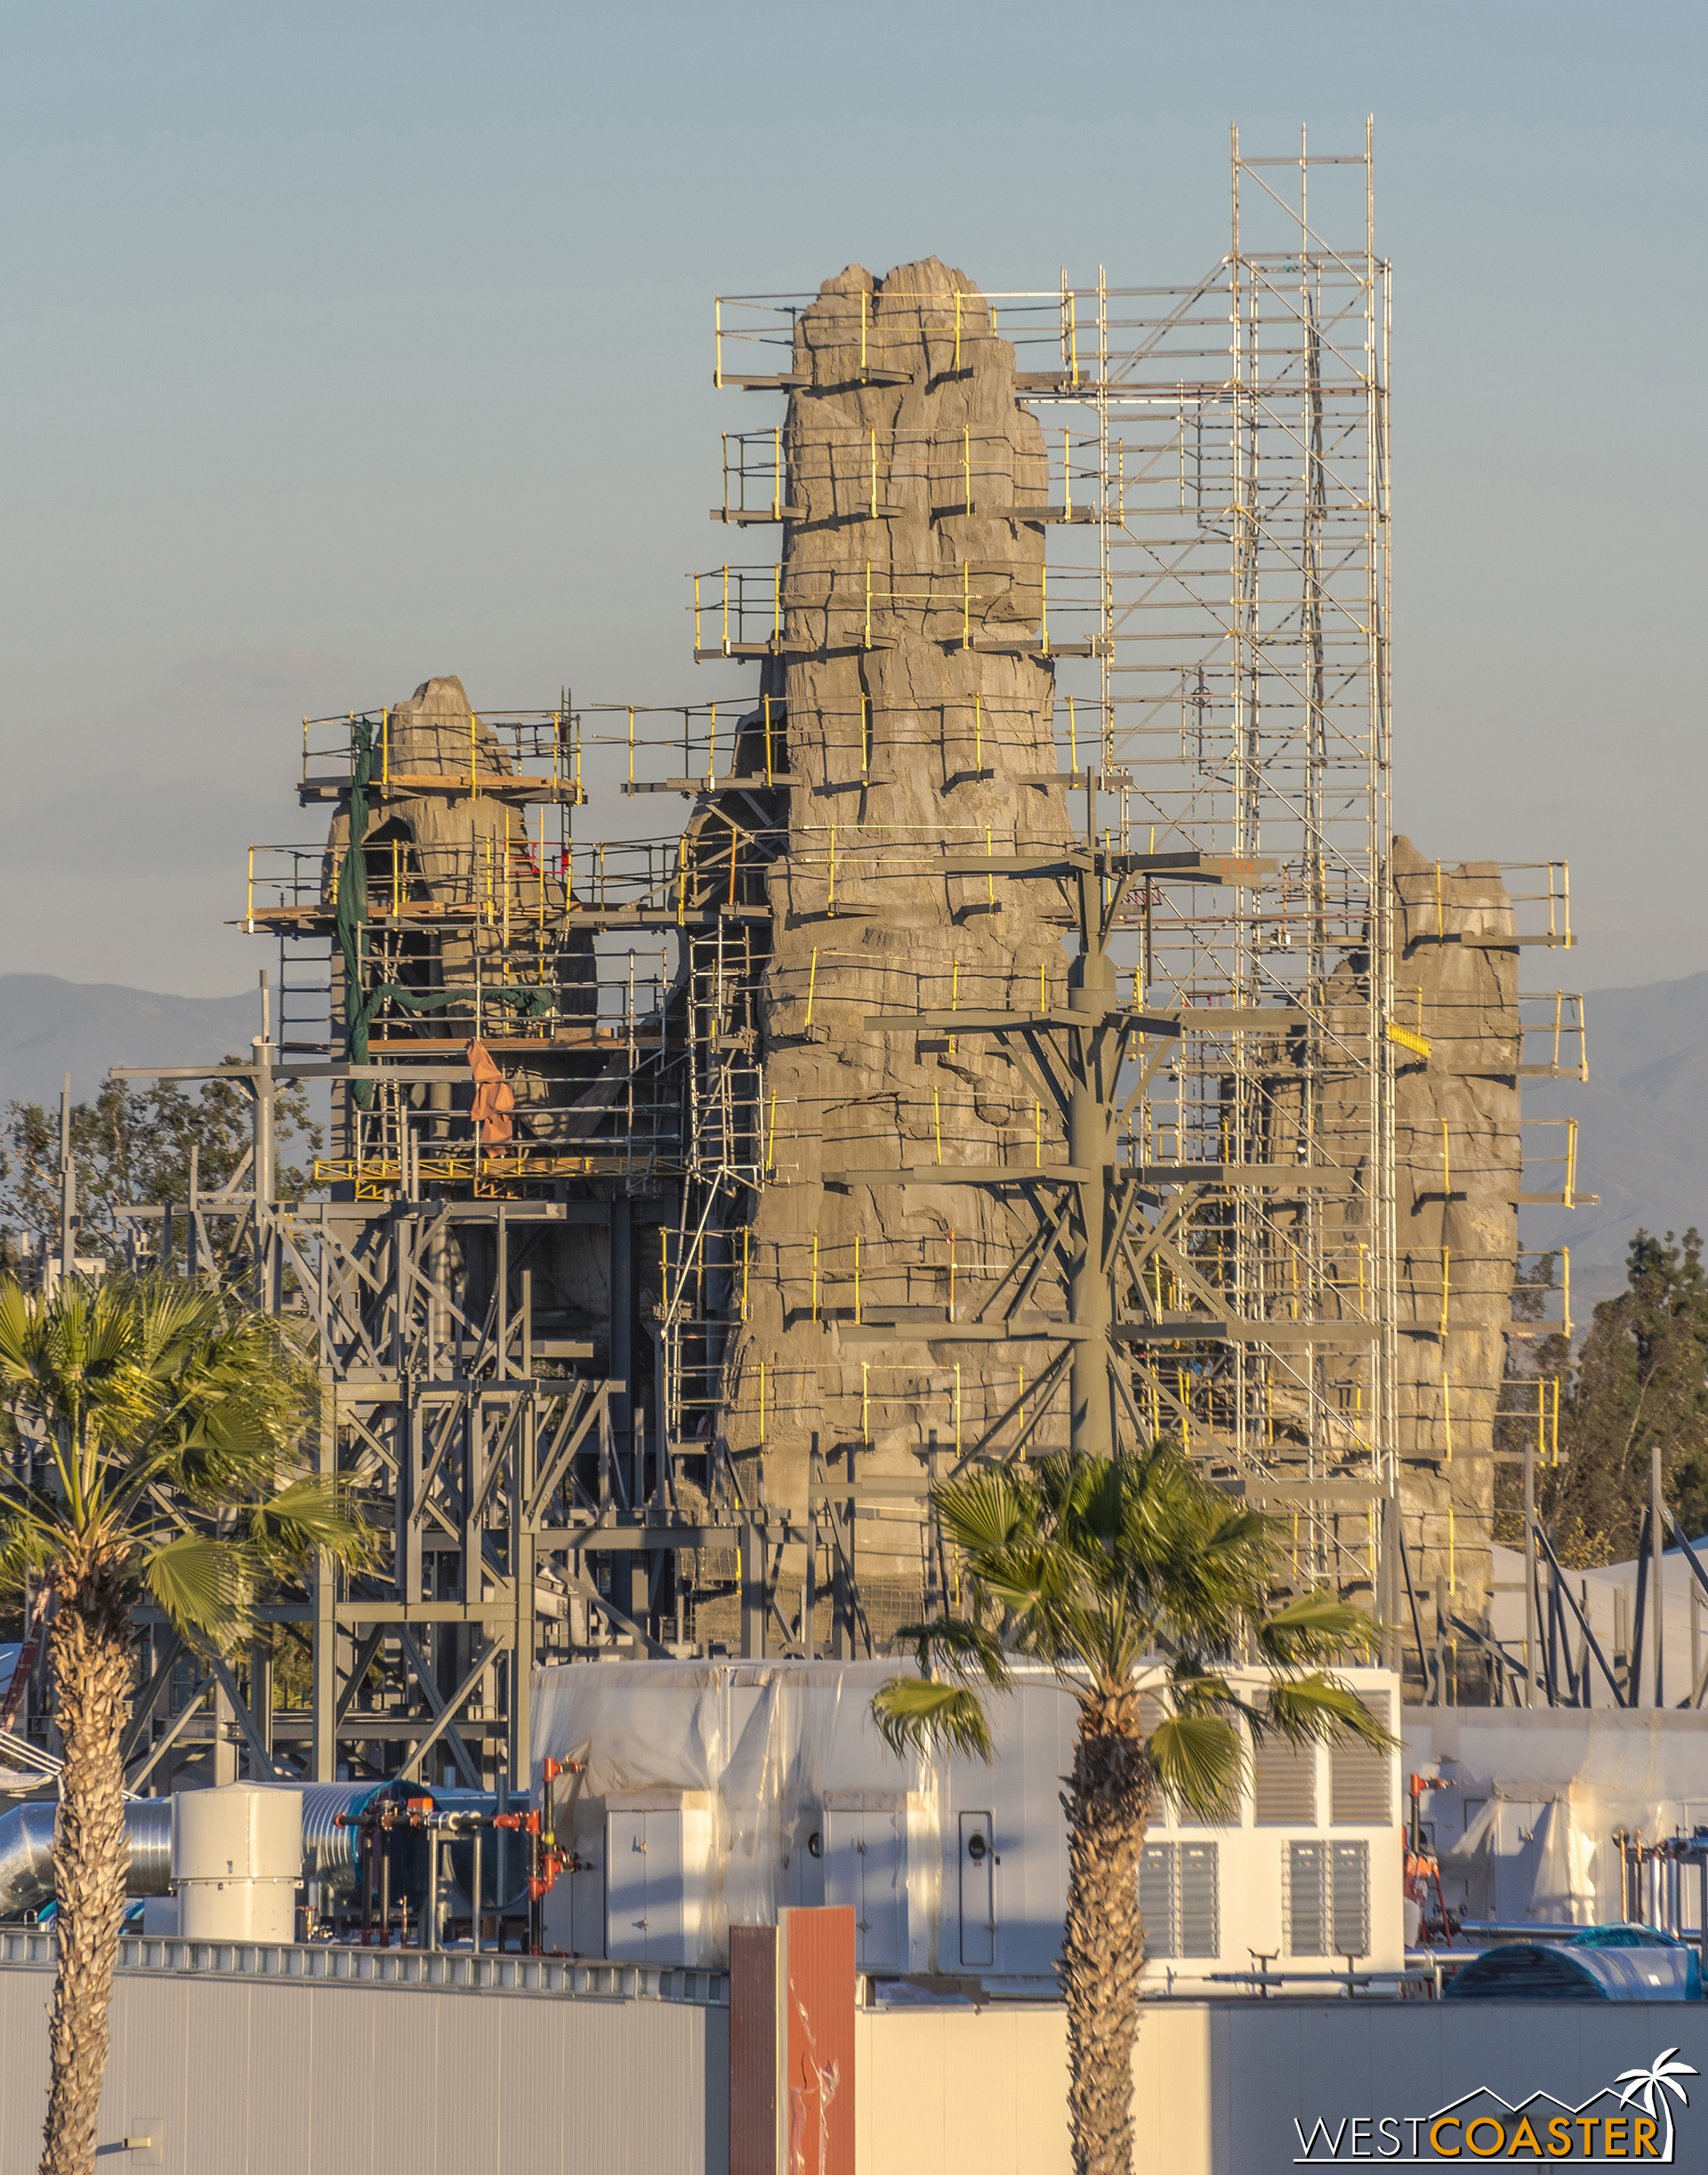 Here's another look at the big rock spire, along with a column and protruding beams for another, smaller rock spire to be soon erected.